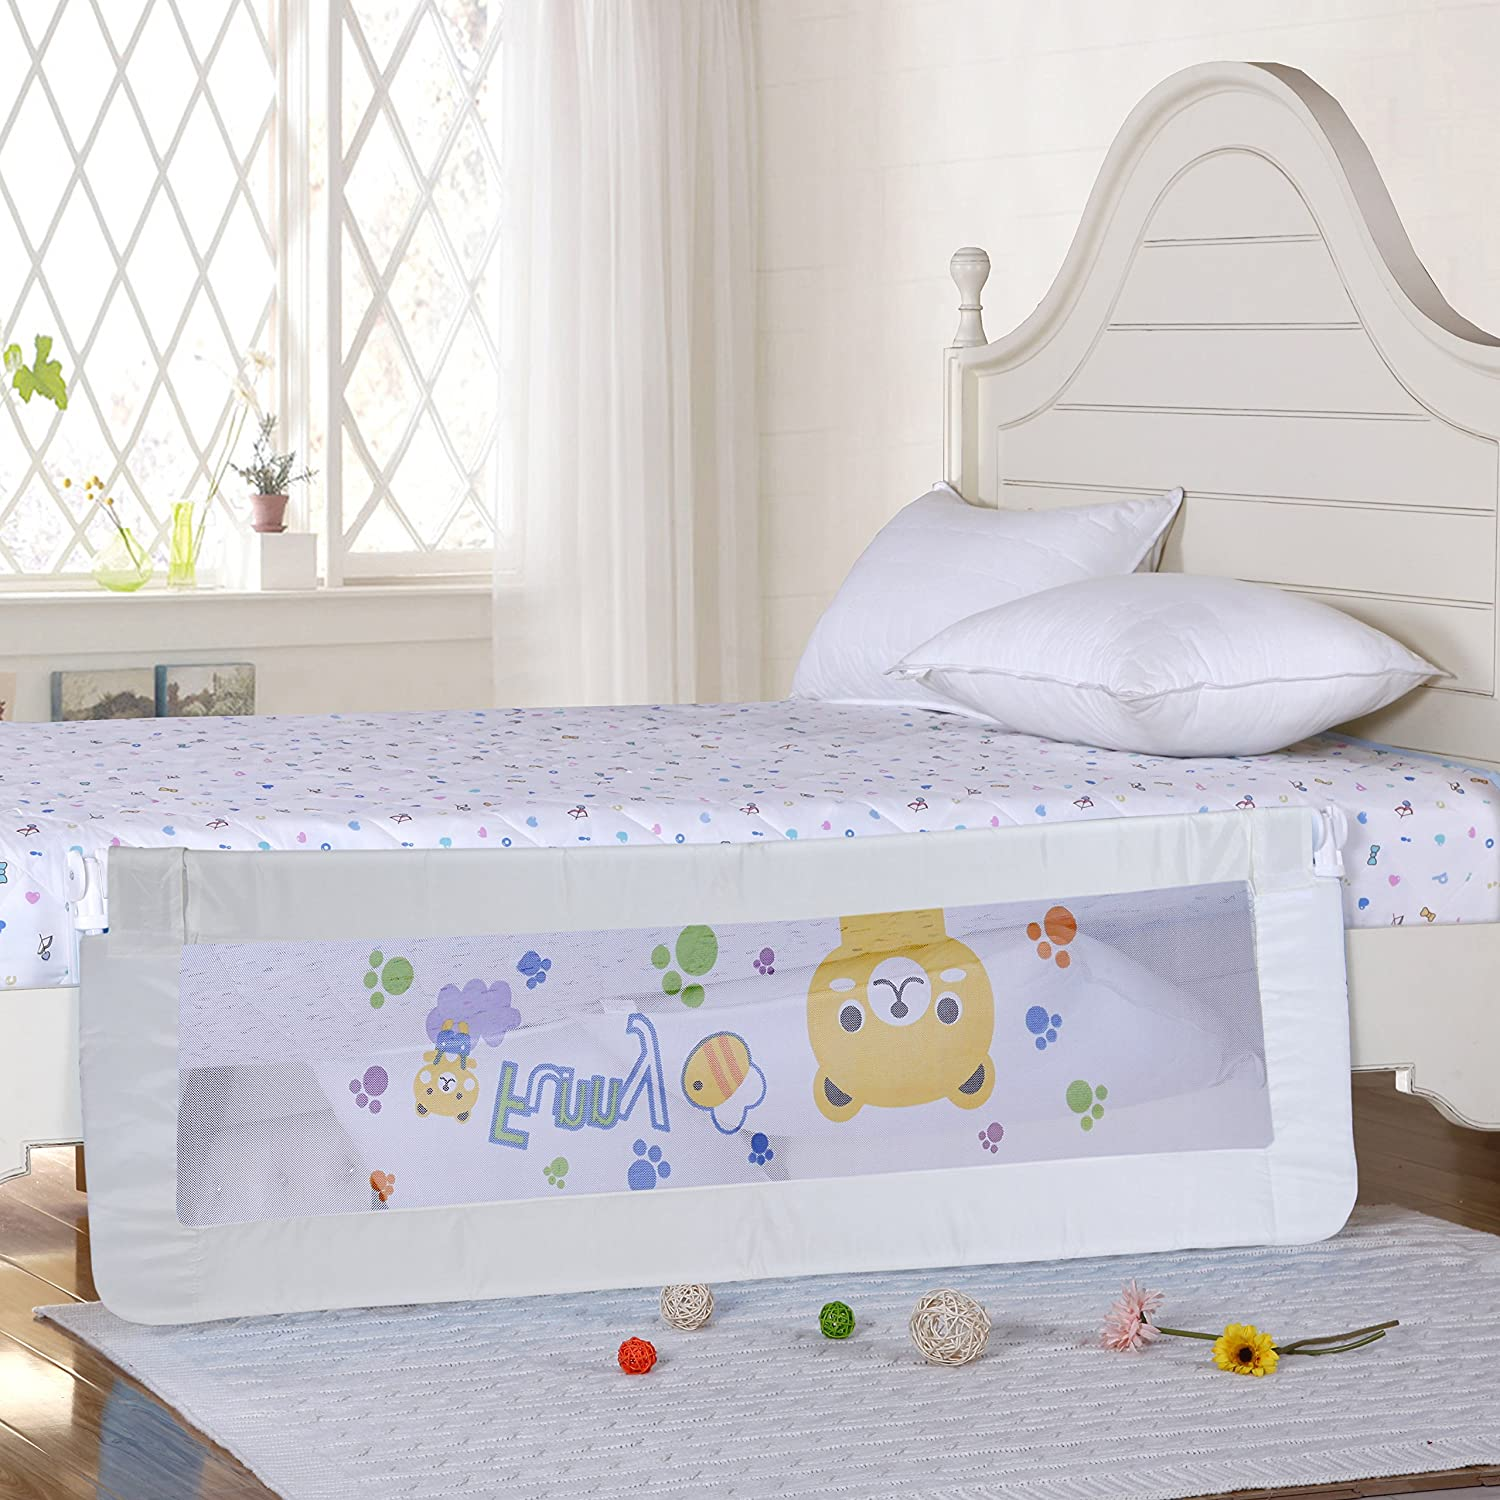 Amazon Baby Bed Rail Children Extra Long Guard Toddler Safety Fold Down Bedrail Potable Stop Falling White Color 58 Inches